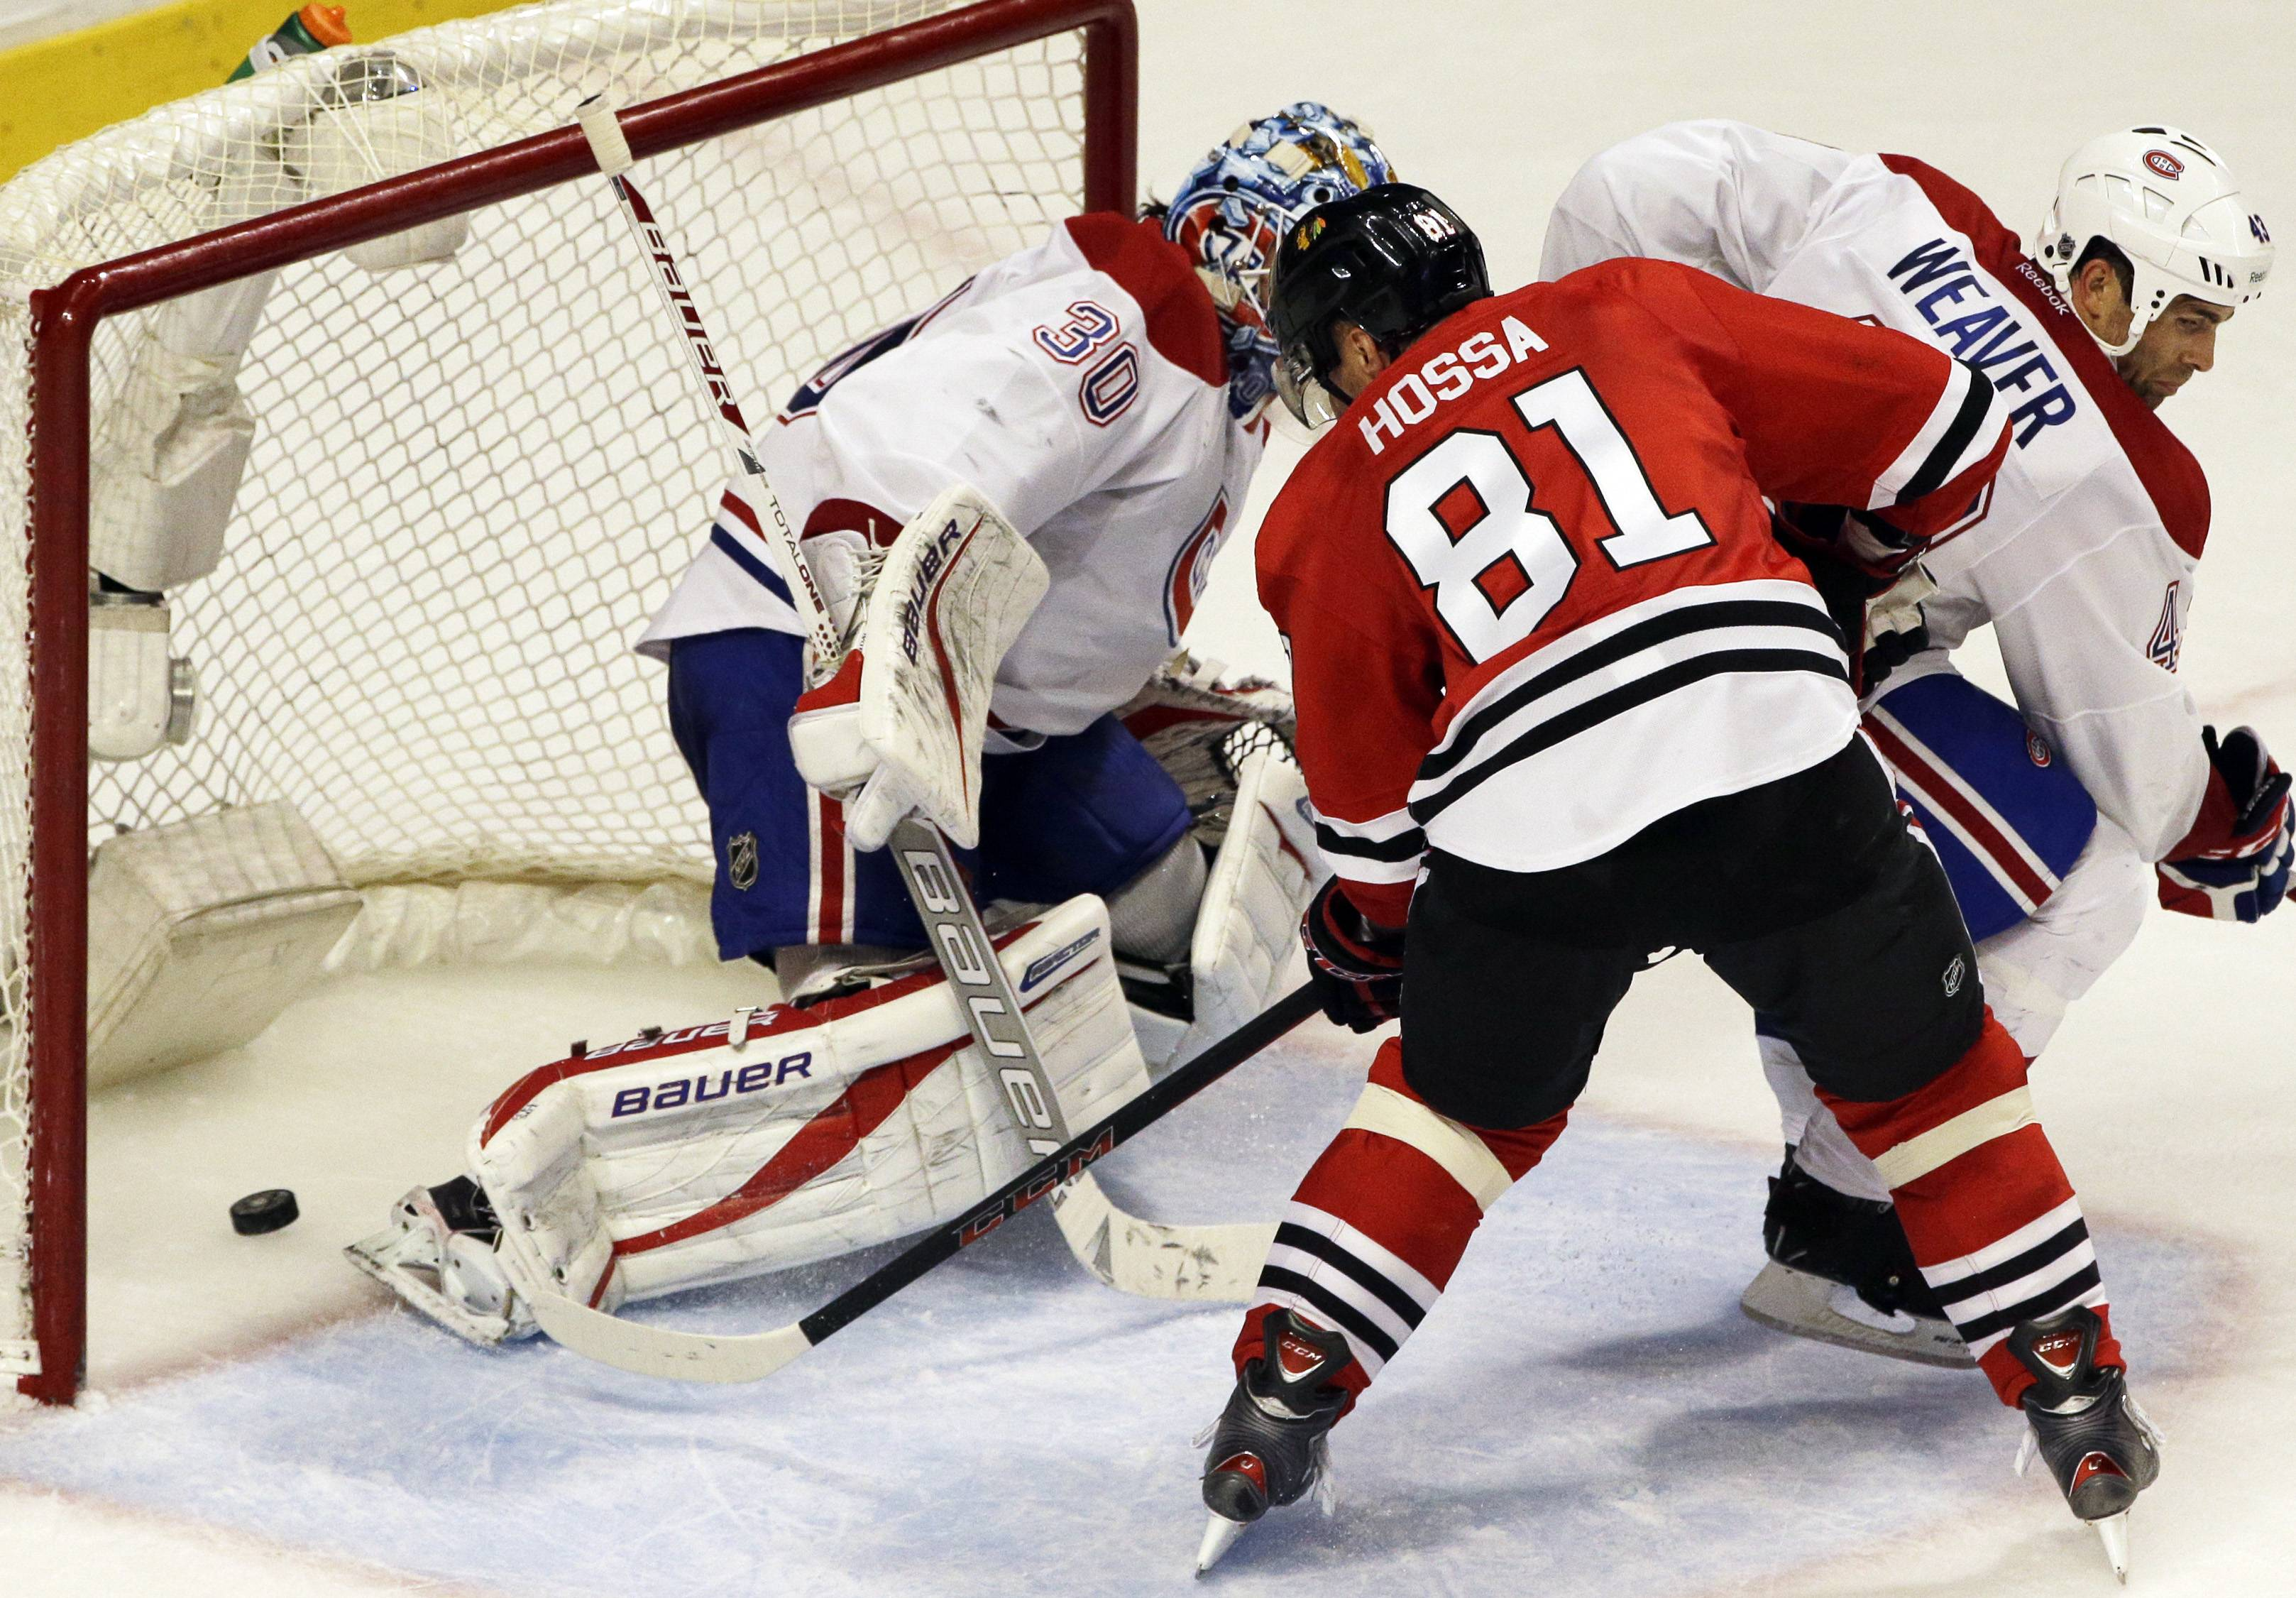 The Blackhawks' Marian Hossa scores against Canadiens goalie Peter Budaj during the final minute to send the game to overtime.